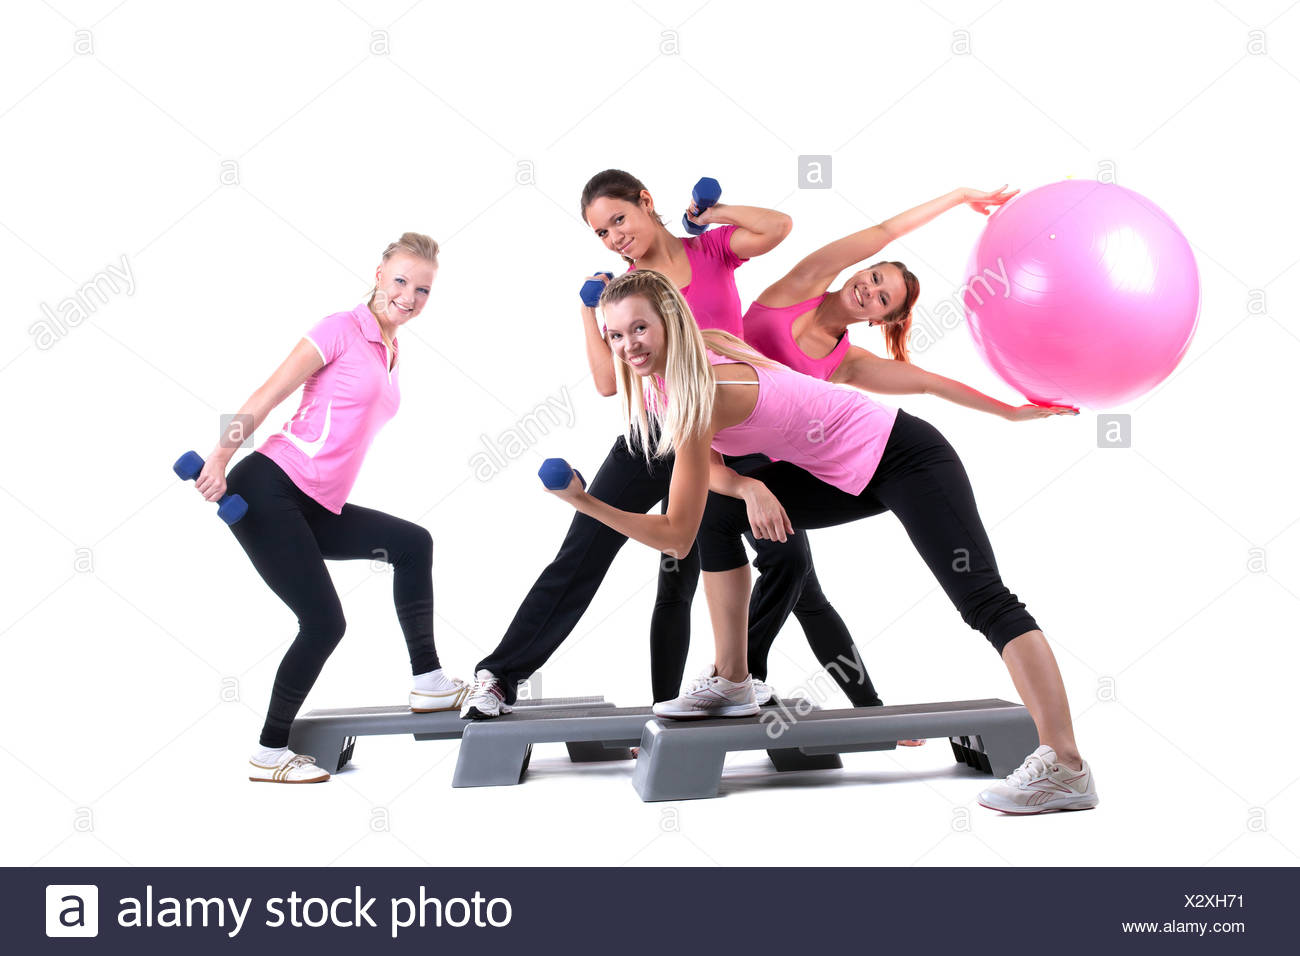 group of fitness instructors with accesories - Stock Image